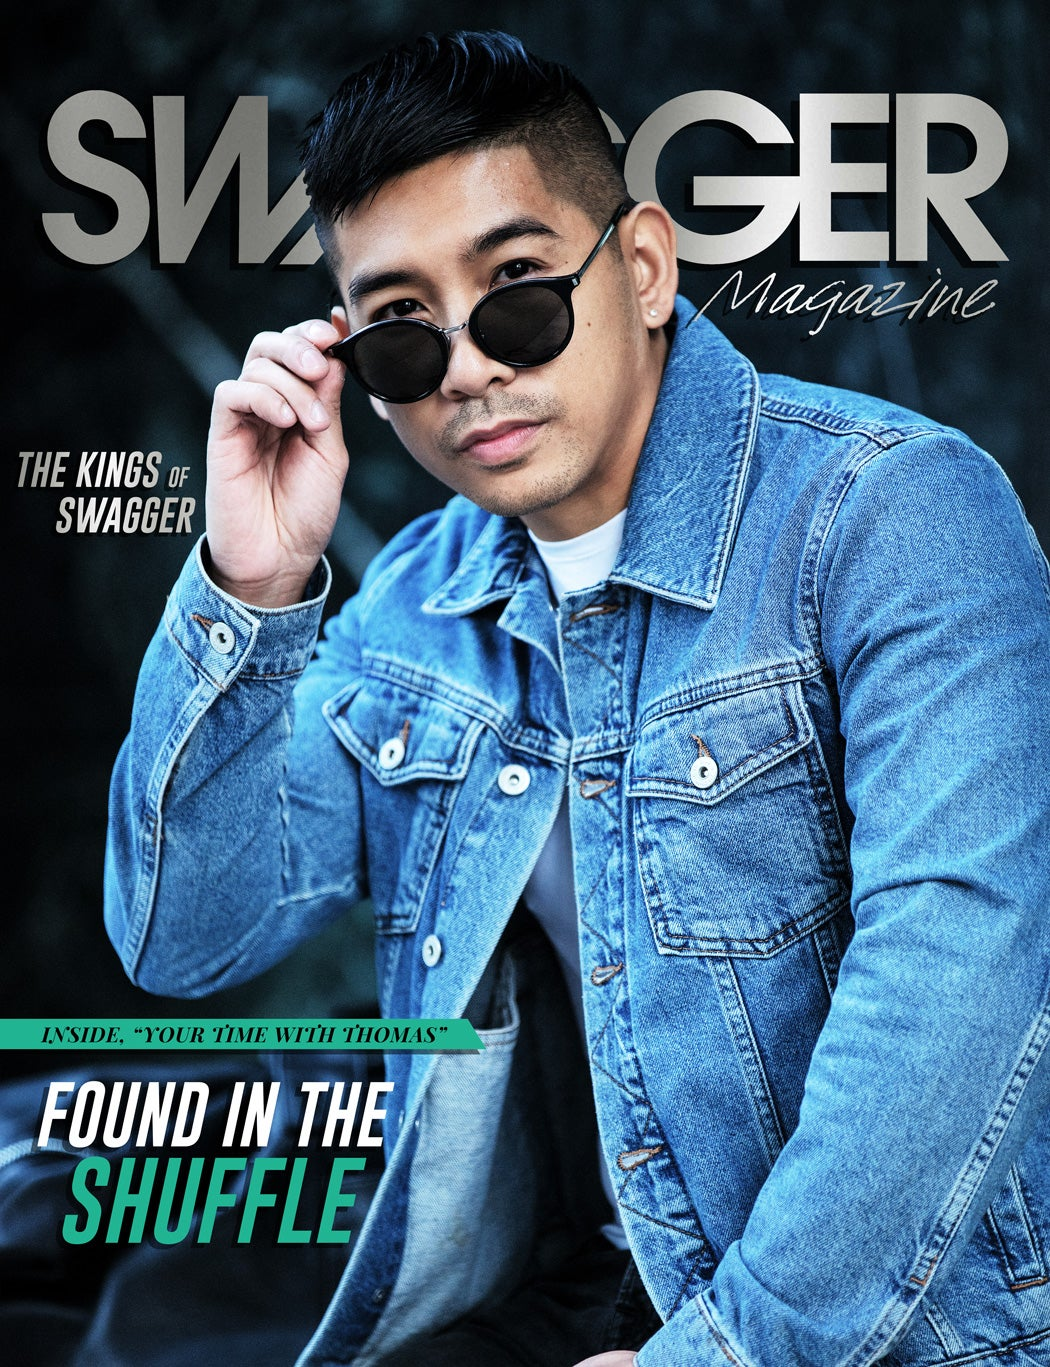 Thomas Orlina - Your Time with Thomas - Cover Story - SWAGGER Magazine